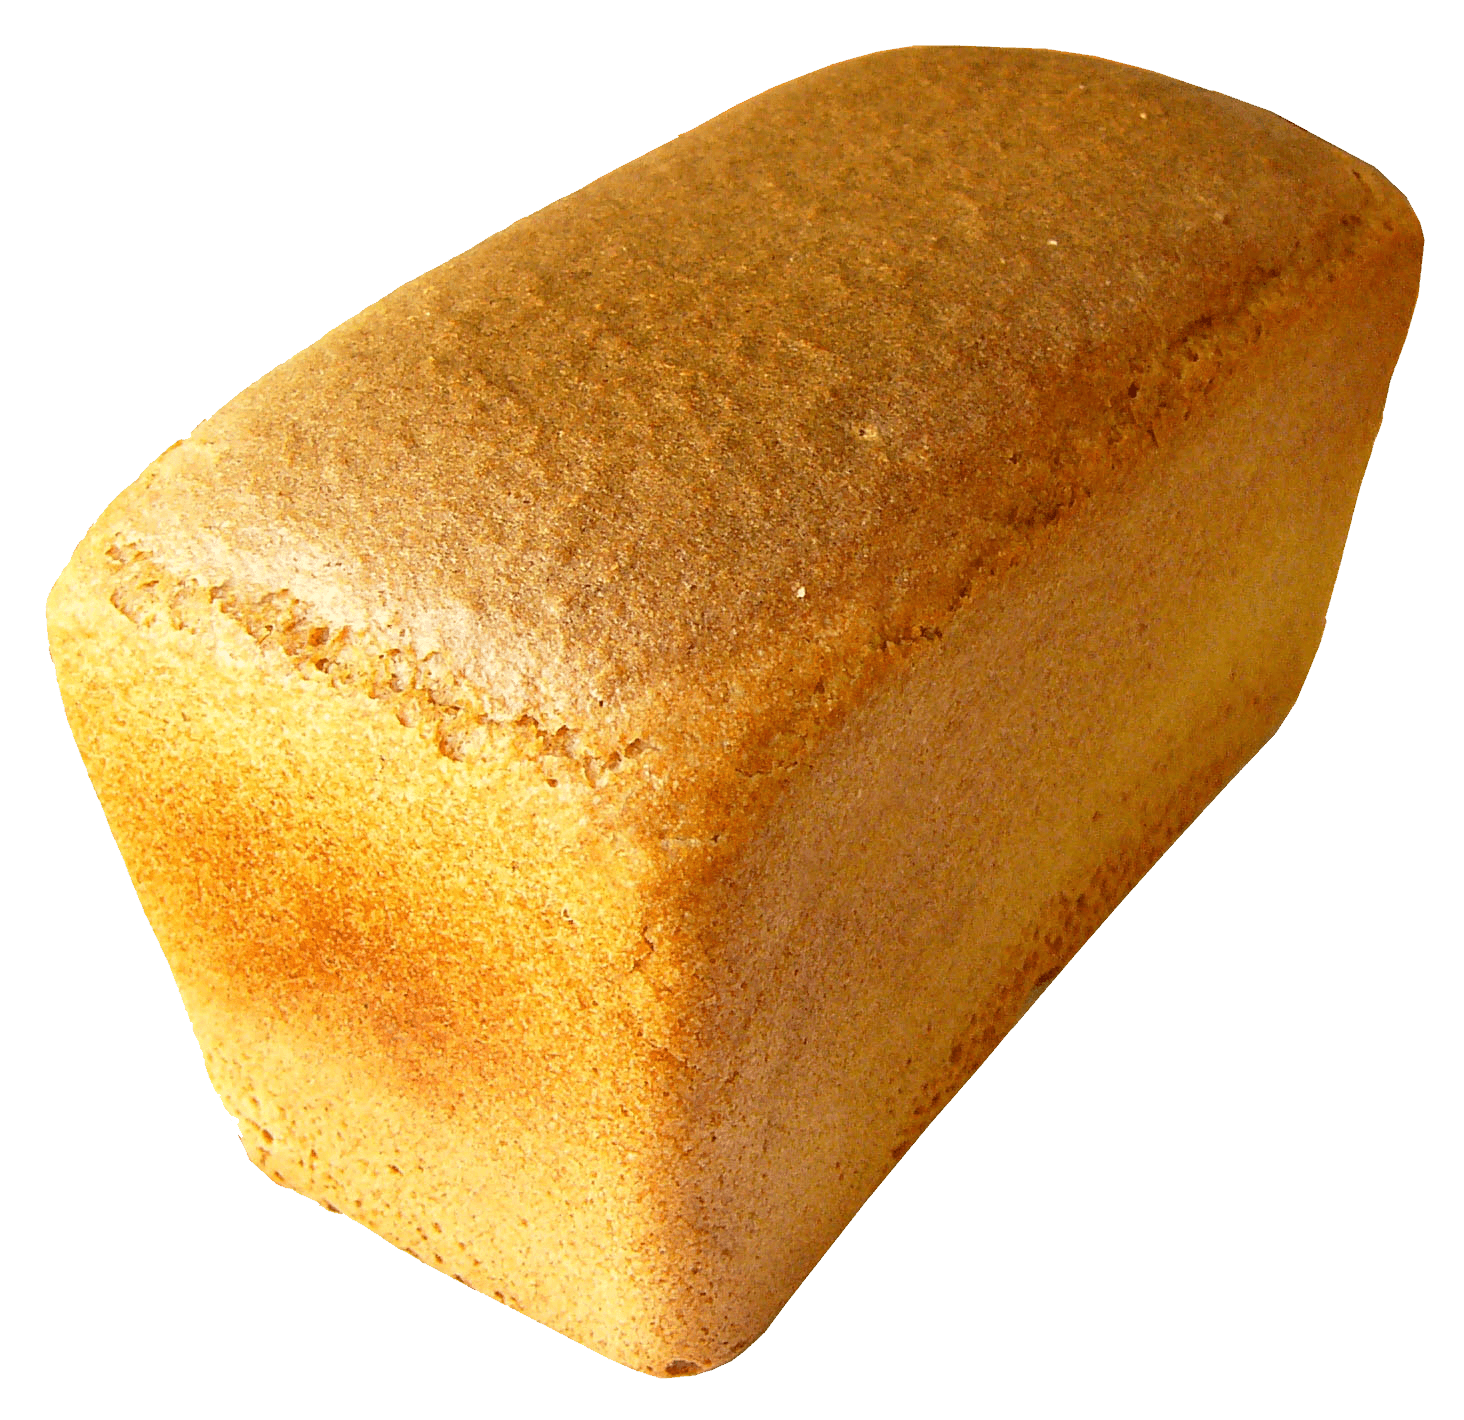 Clipart bread triangle. Transparent png images page